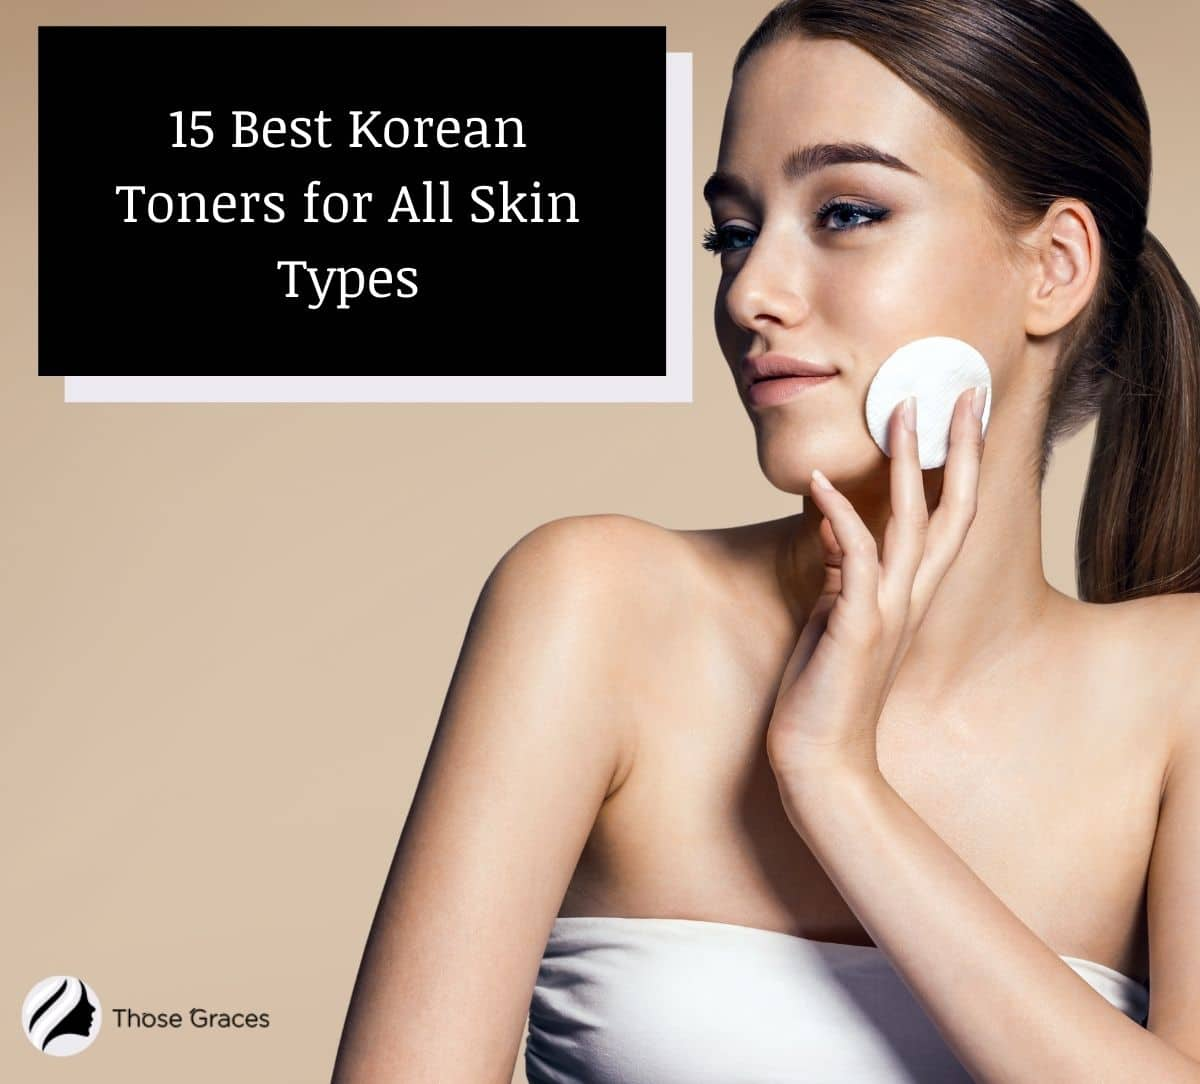 pretty lady putting the best Korean toner on her face using a cotton pad